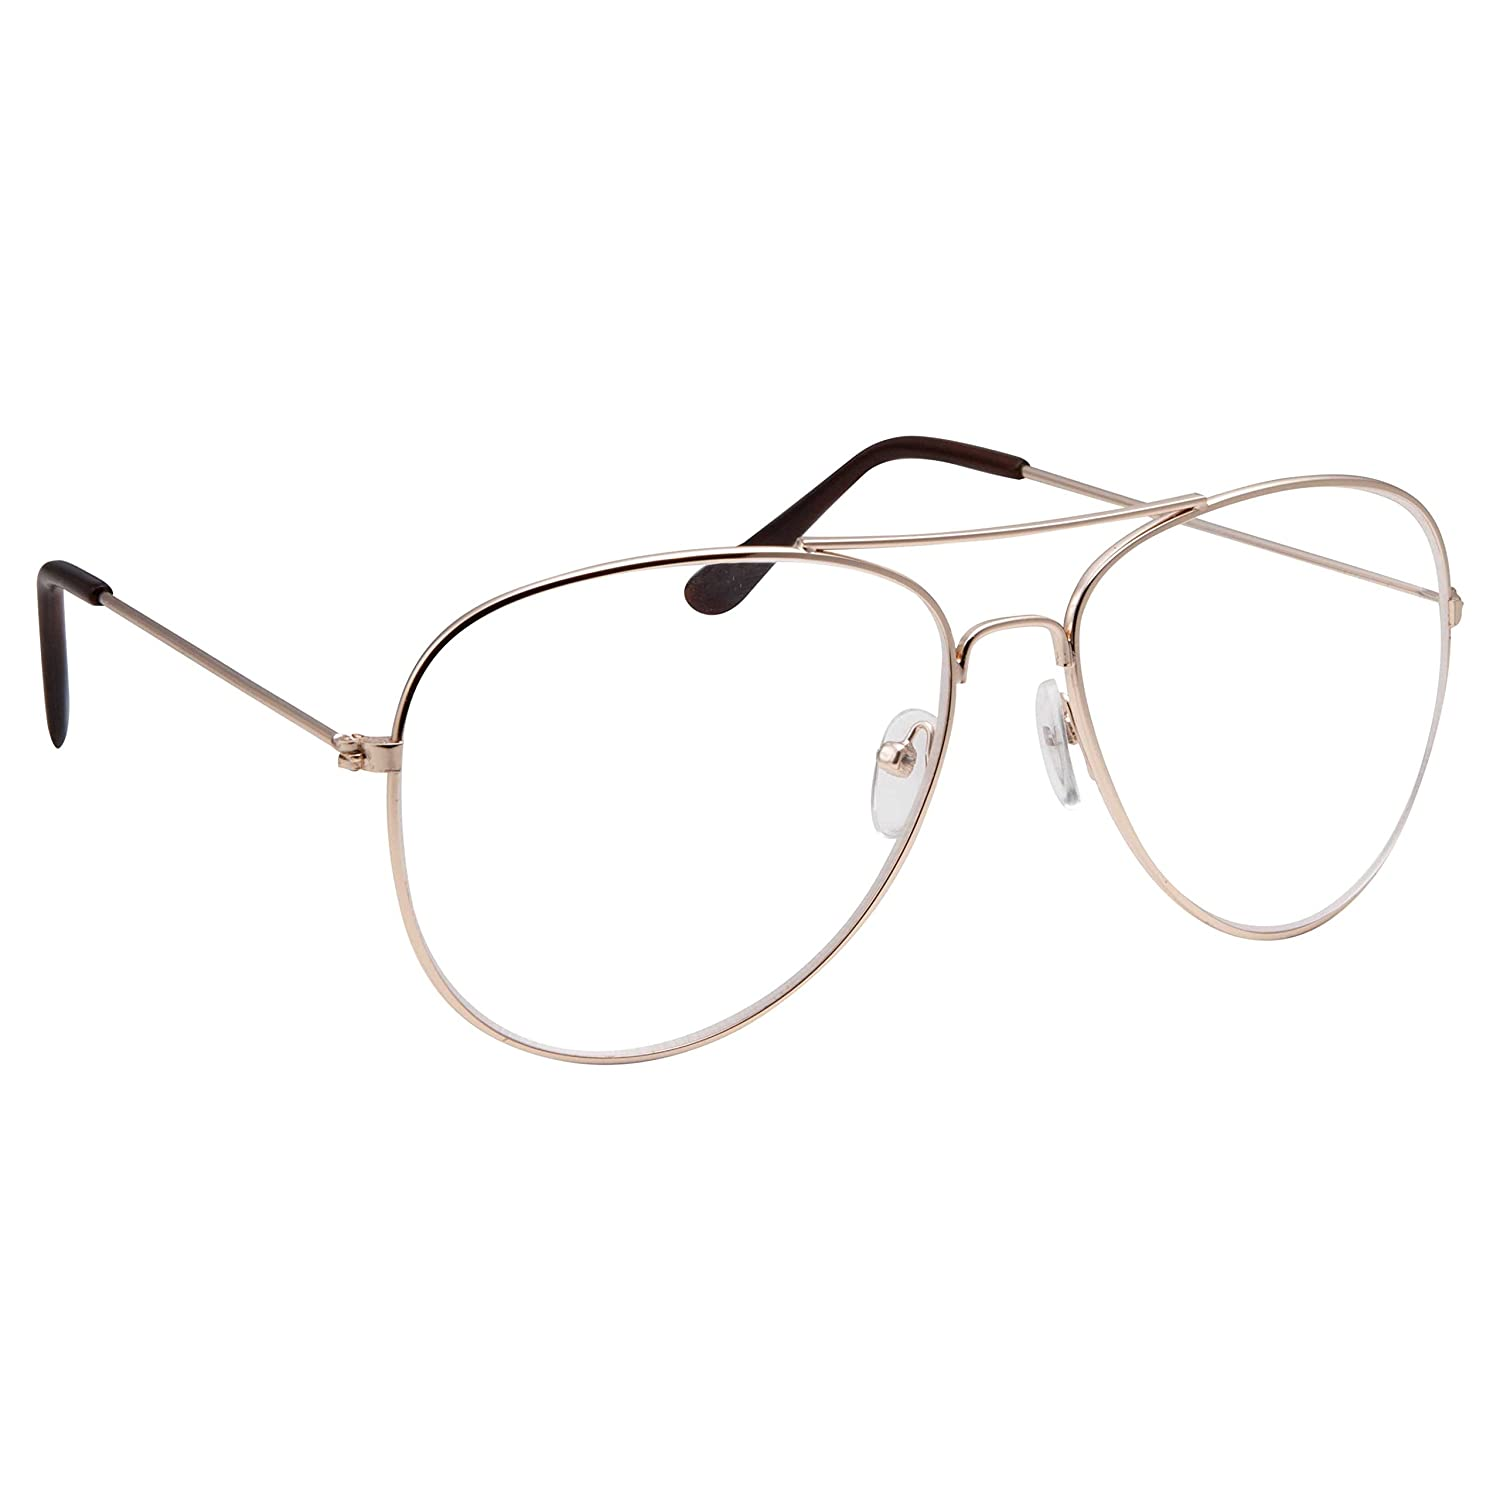 202a52f059 Amazon.com  Classic Men s Or Women s Fashion Gold Aviator Glasses (3 Sizes)  - LARGE  Clothing